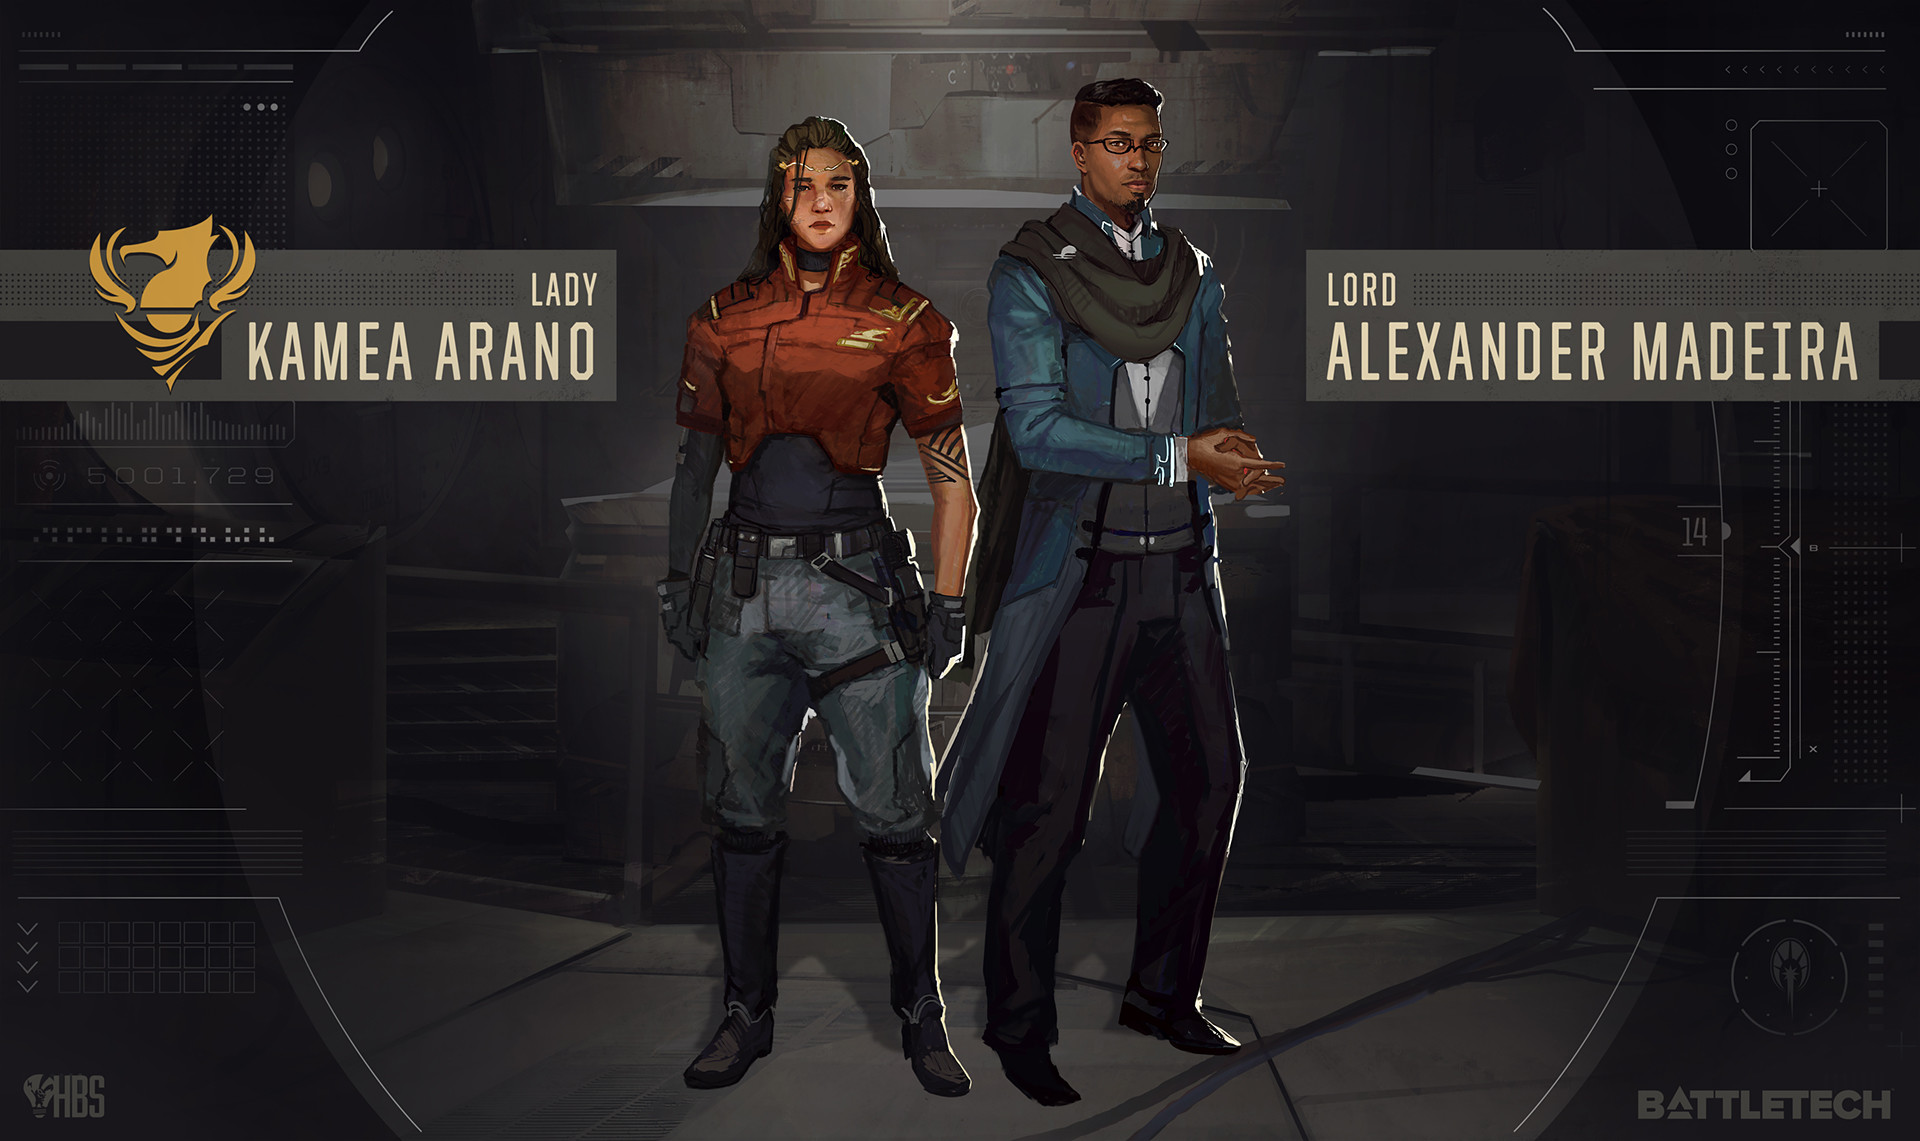 Our main protagonist and her advisor.